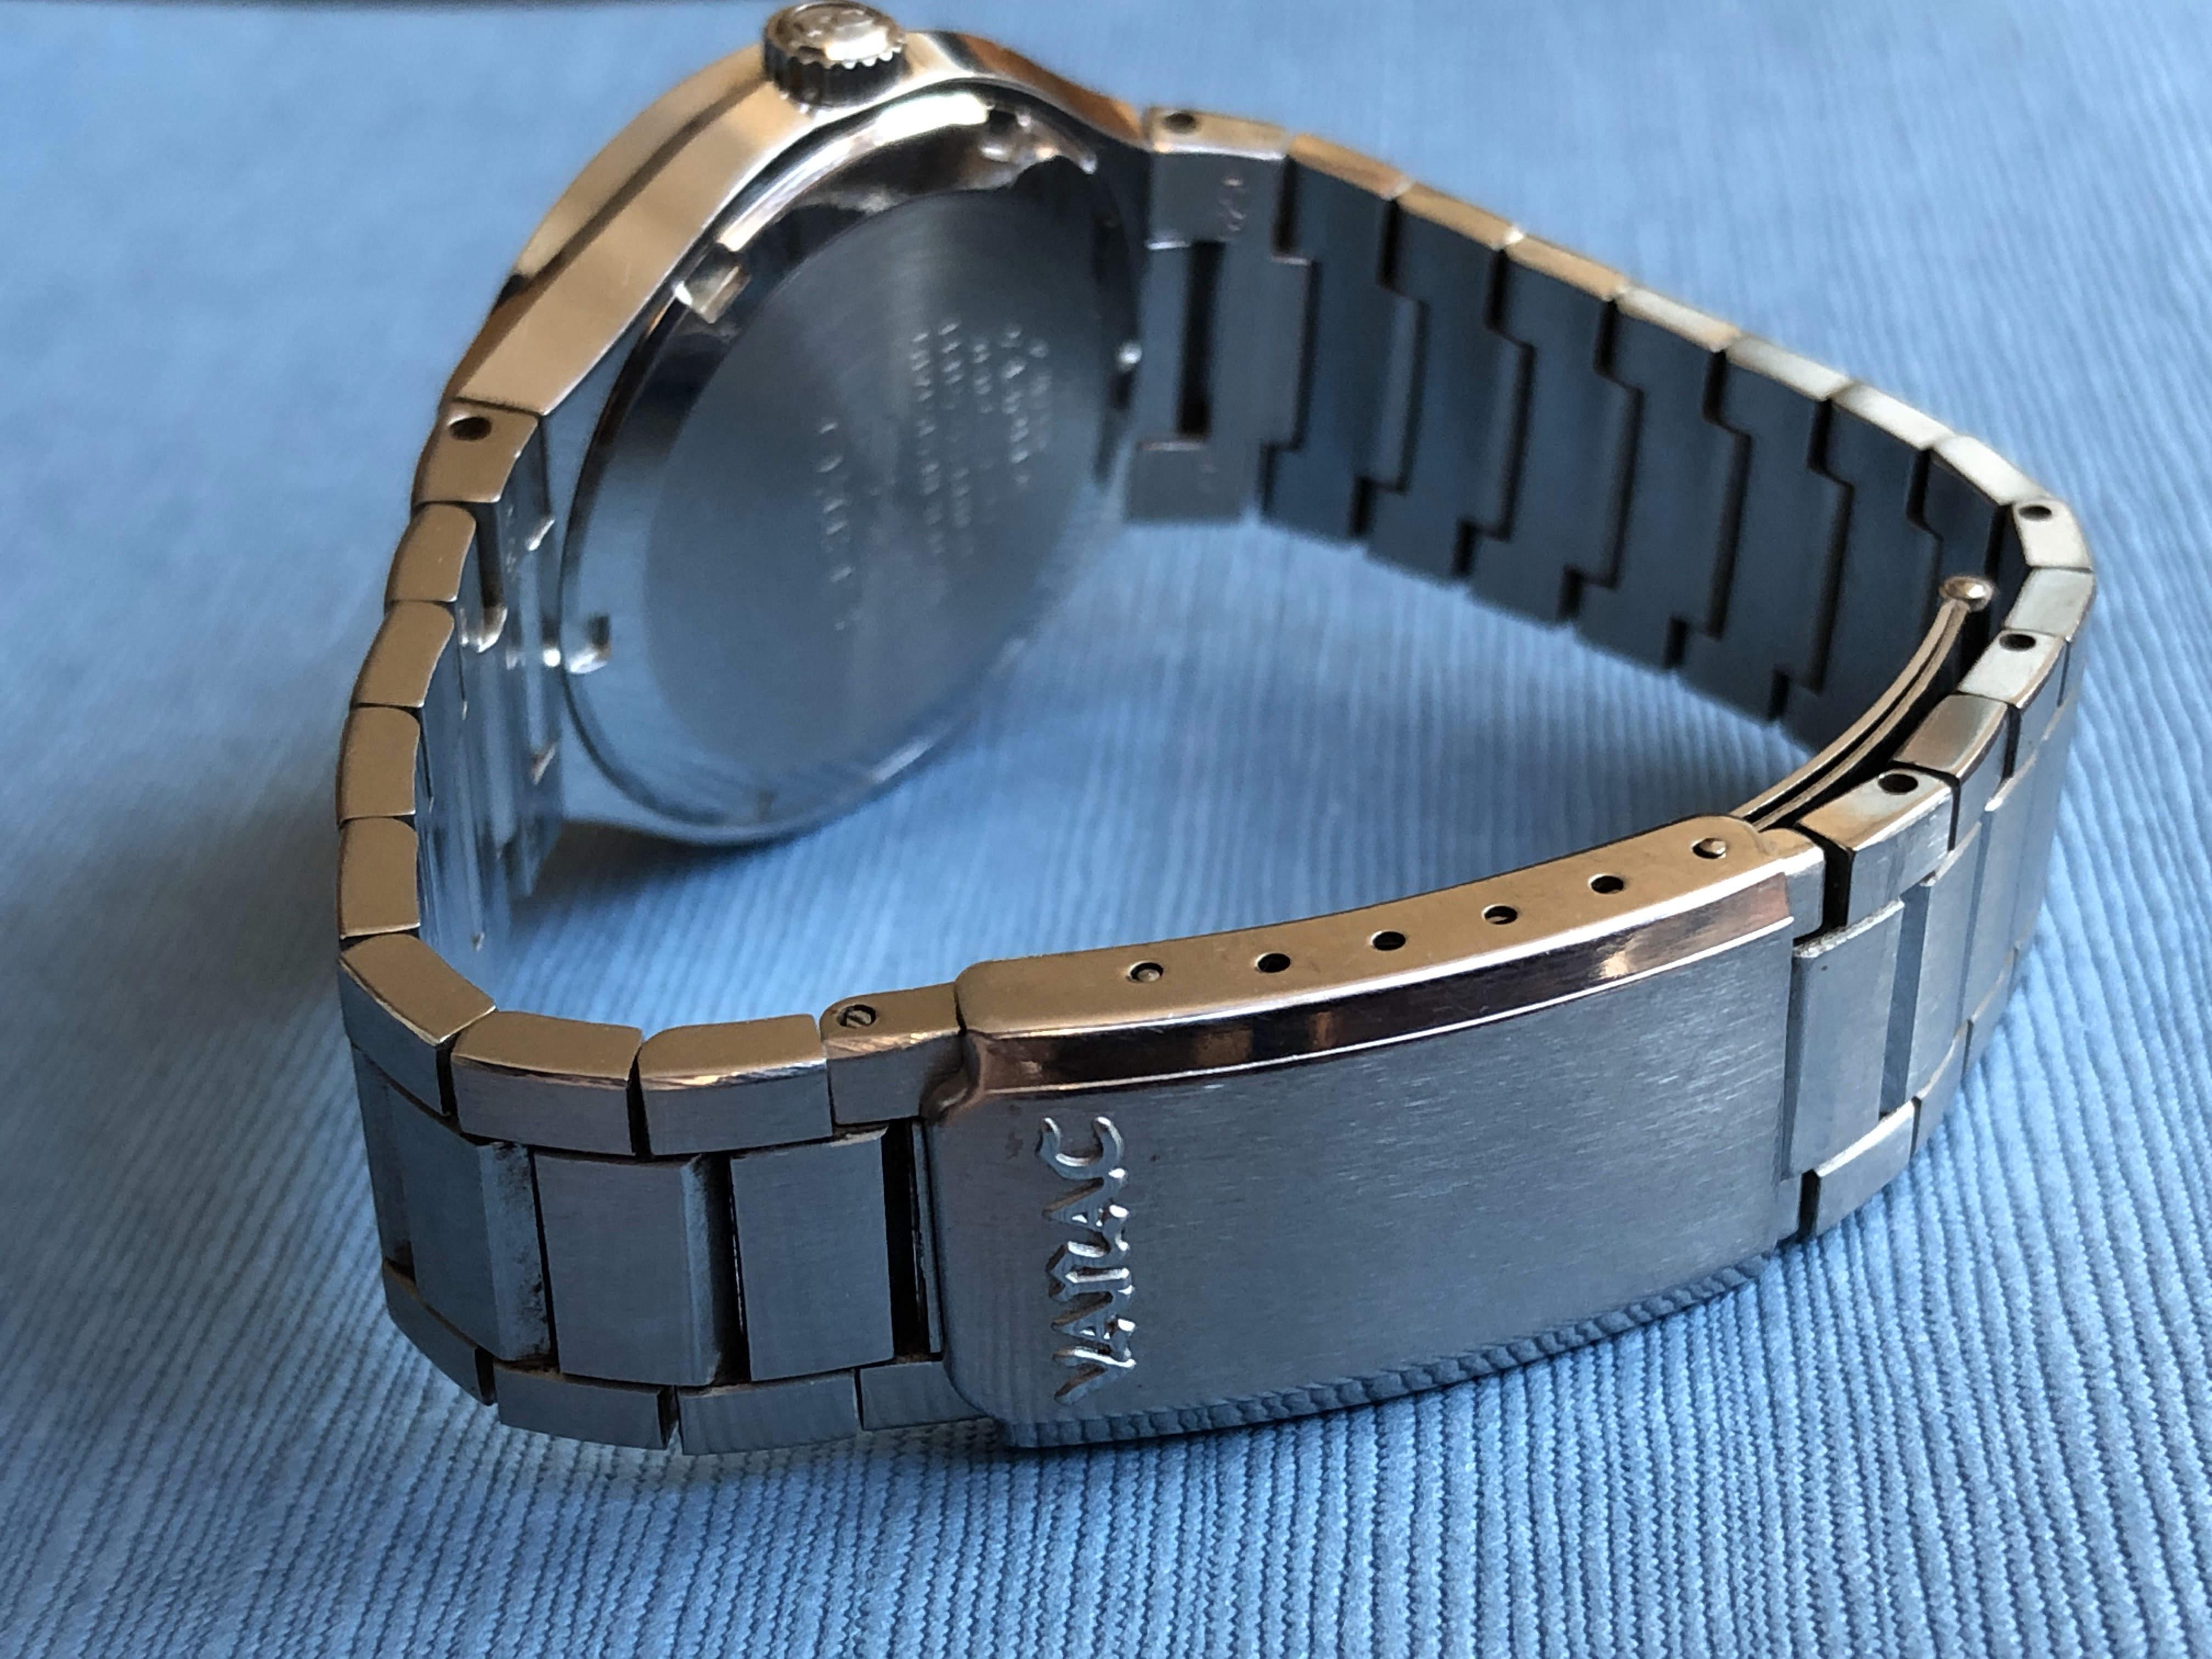 King Seiko Vanac 5626-7160 (Sold)